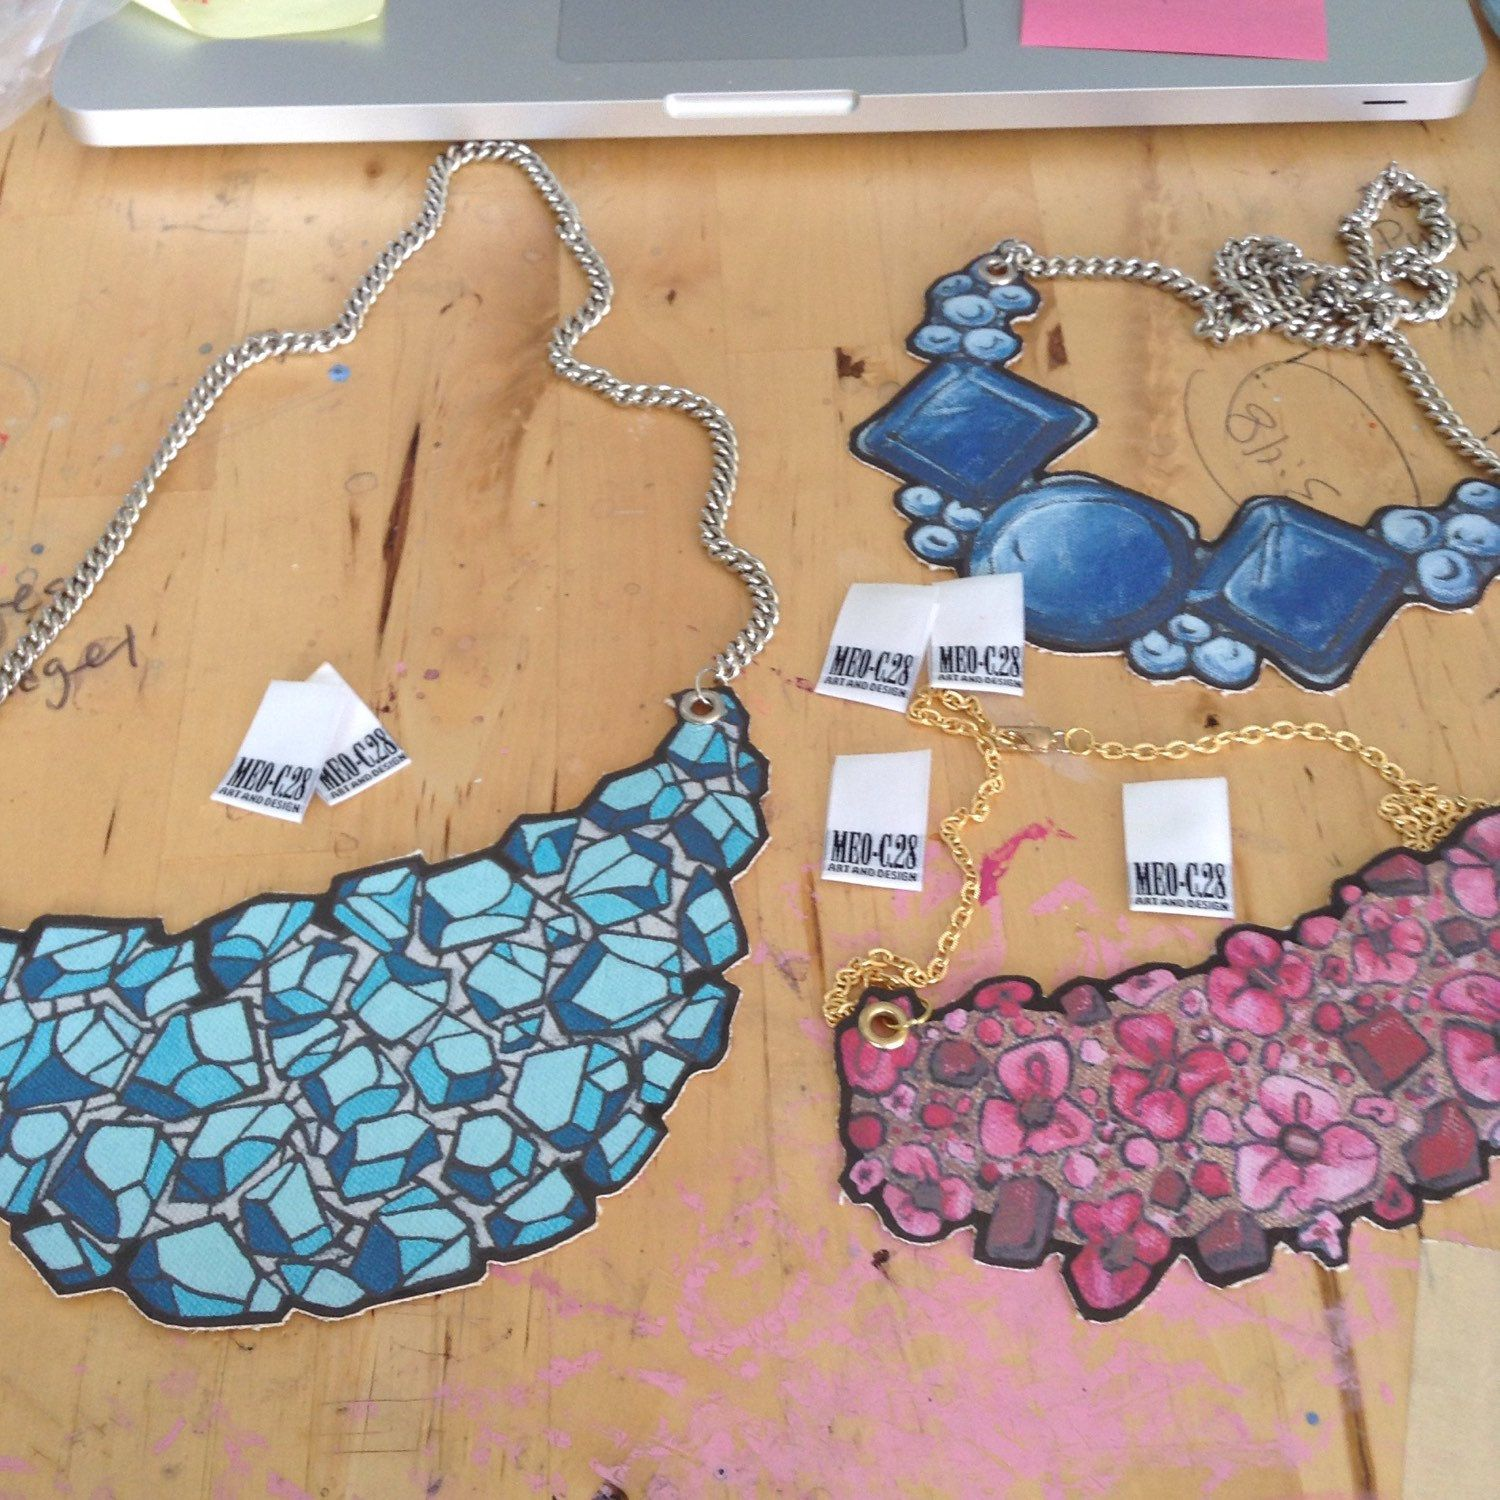 Making of the reproduction print necklaces